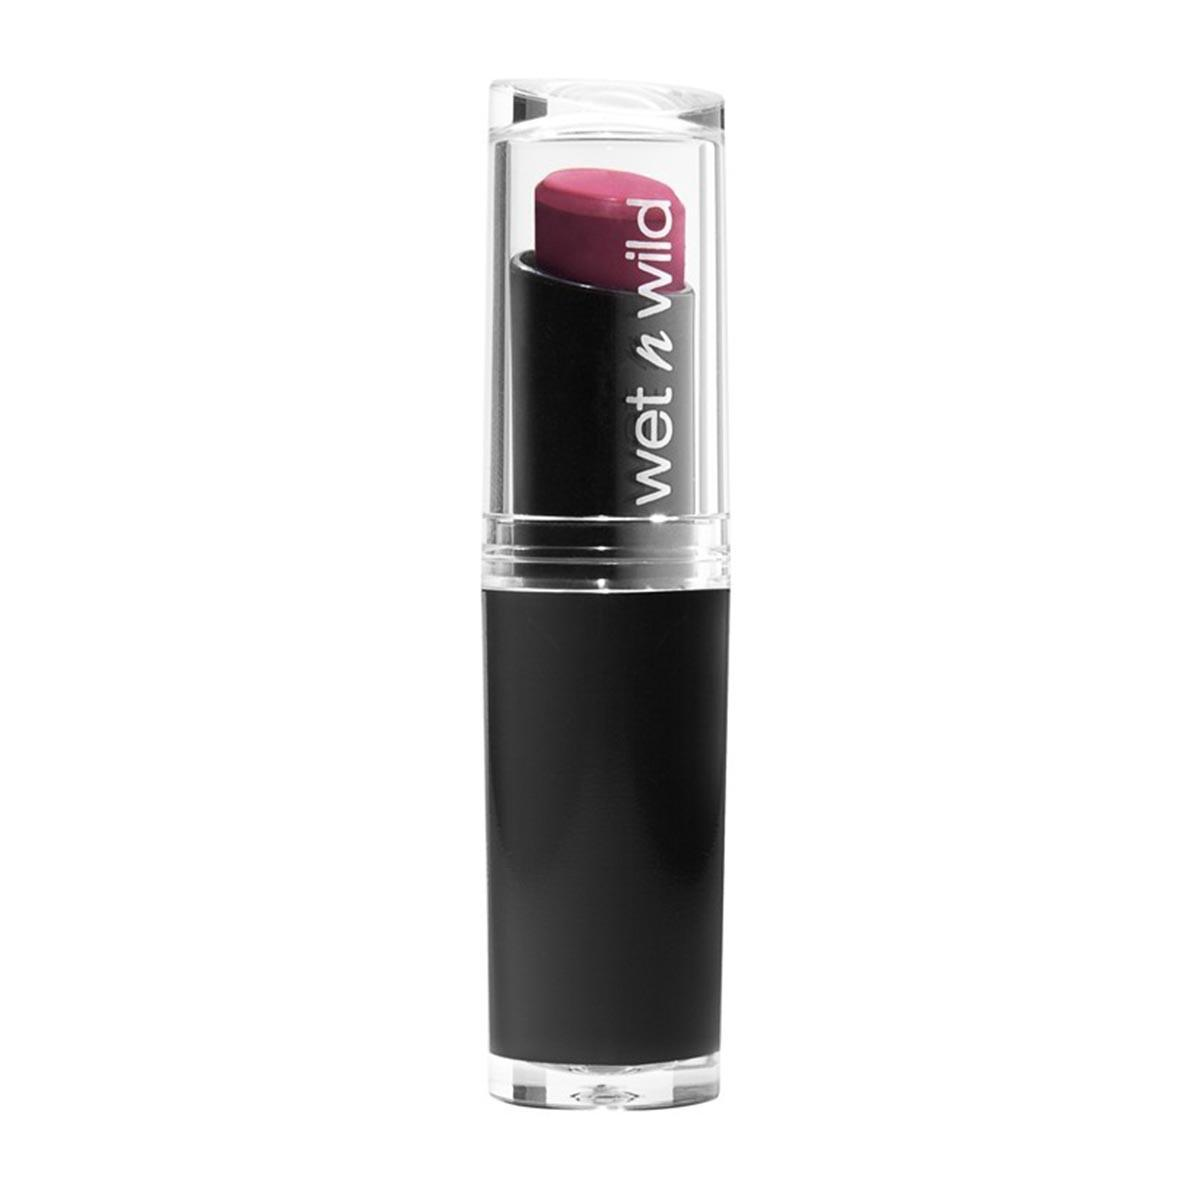 Wet n wild Megalast Lip Color Mauve Outta Here